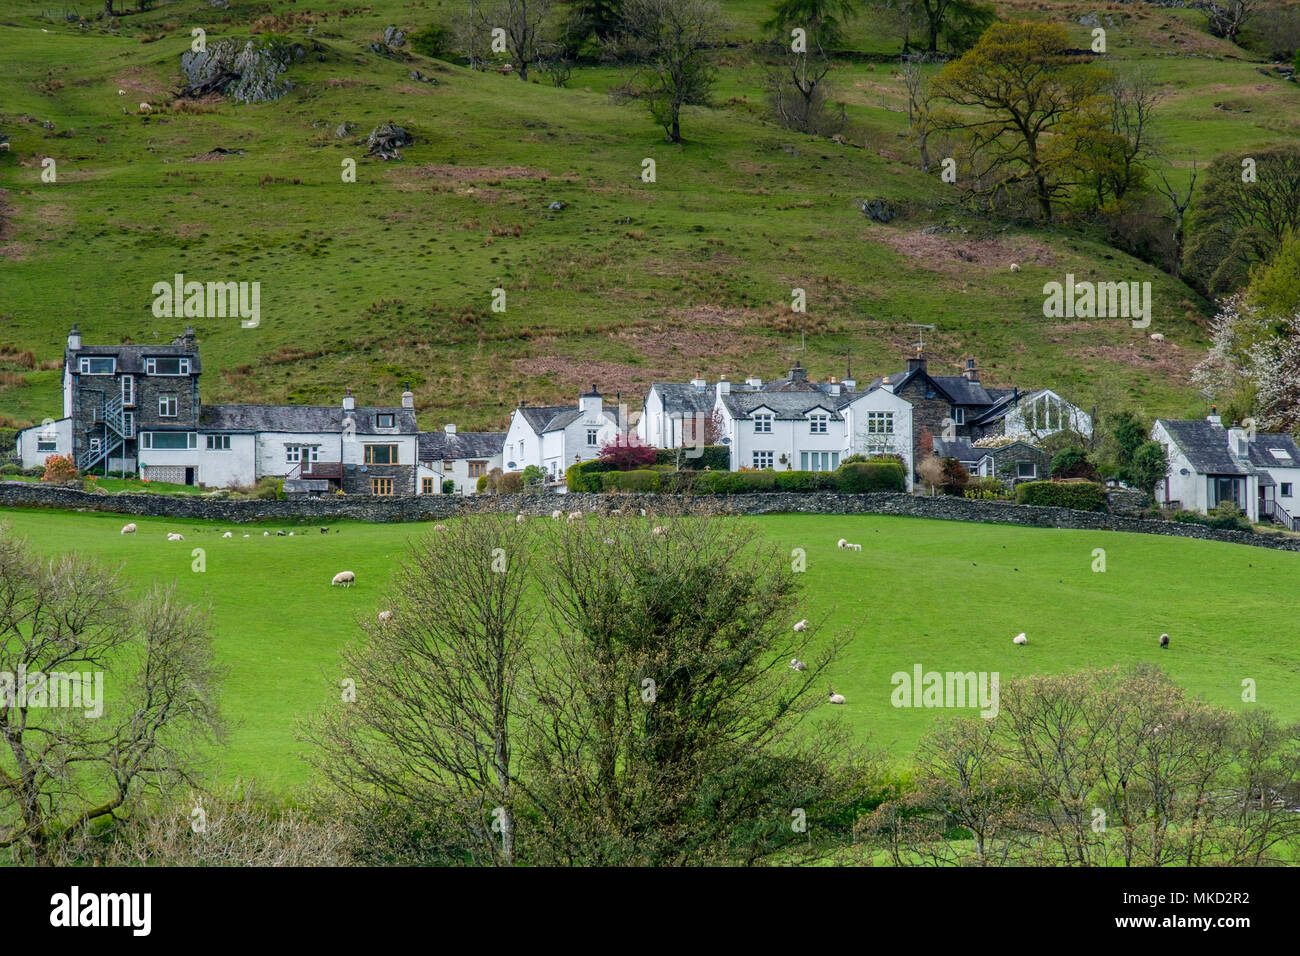 Cottages in Troubeck, near Windermere, Lake District, Cumbria - Stock Image